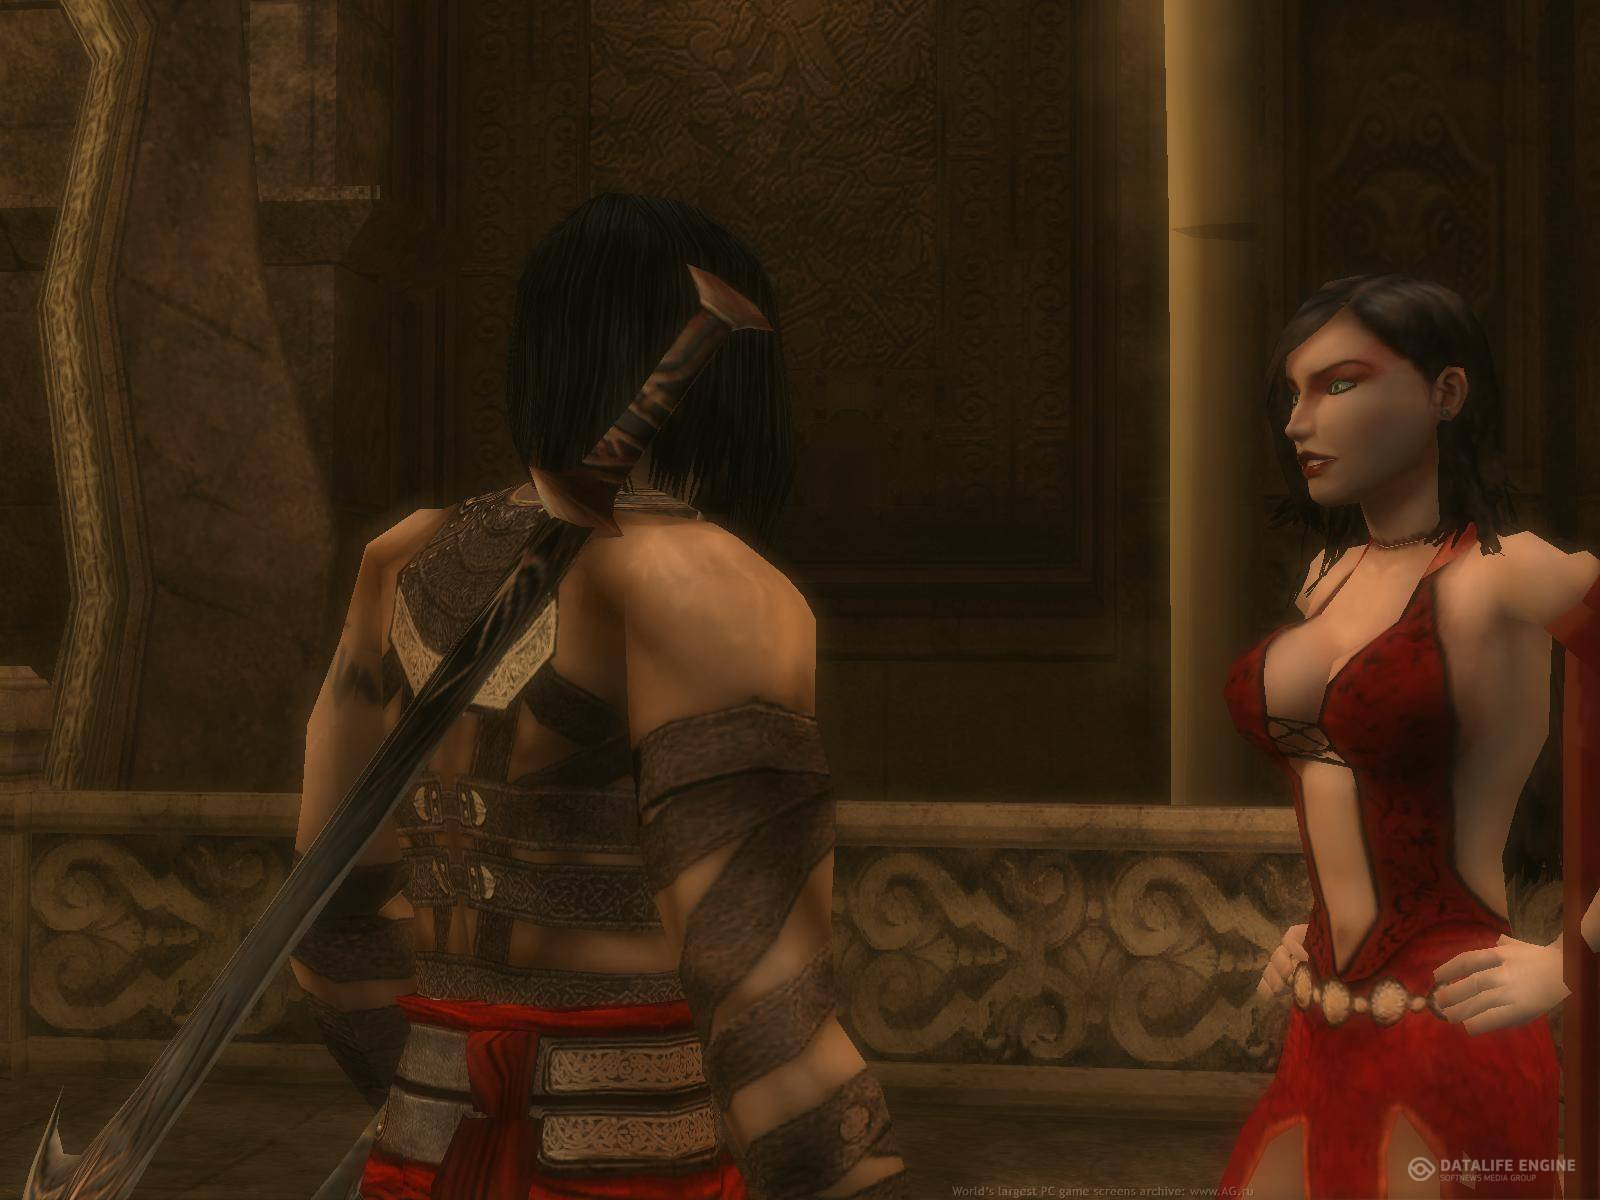 Naked girl of prince of persia game nackt video